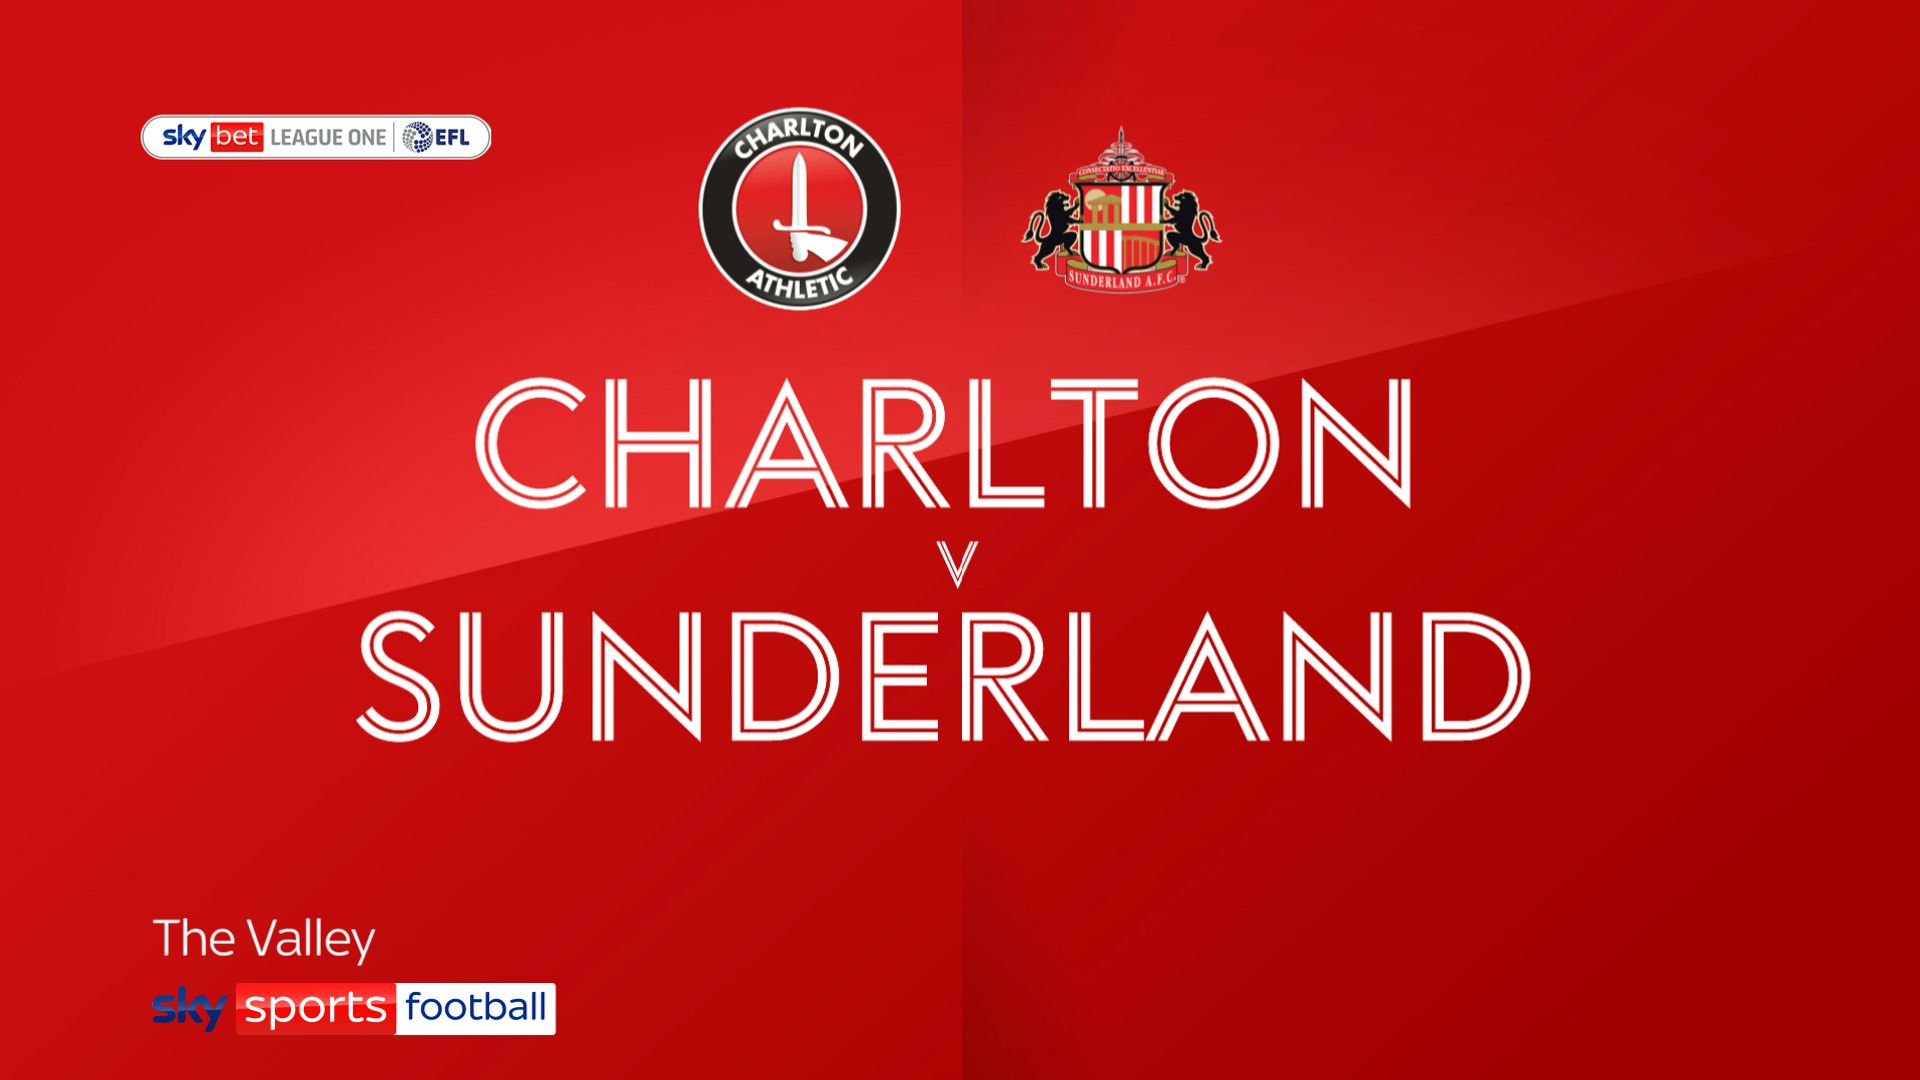 Ten-man Sunderland hold Charlton